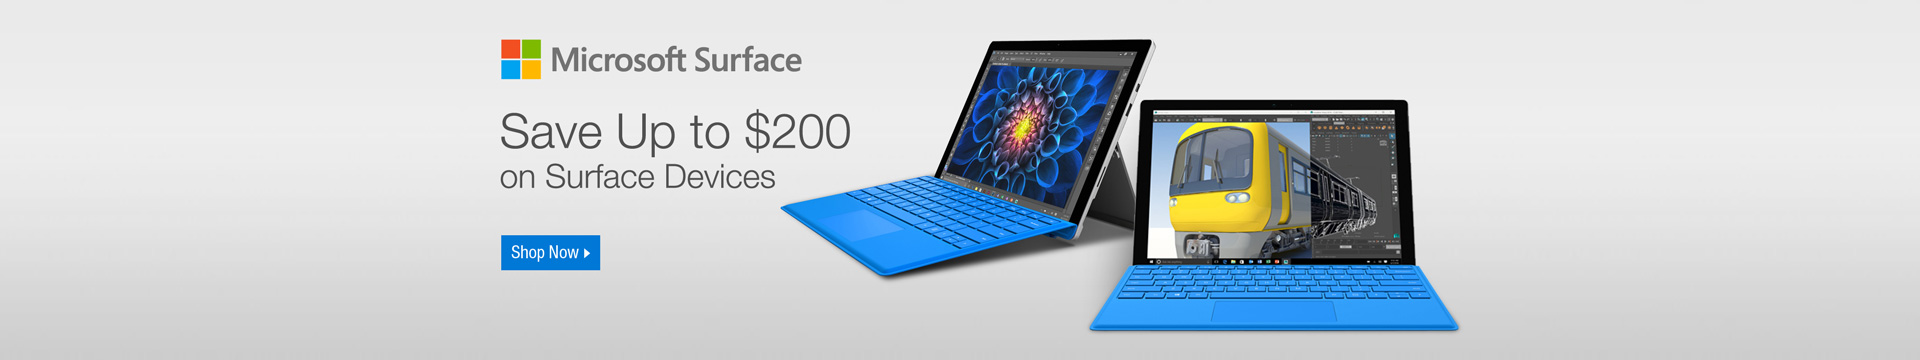 Save up to $200 on Surface Devices